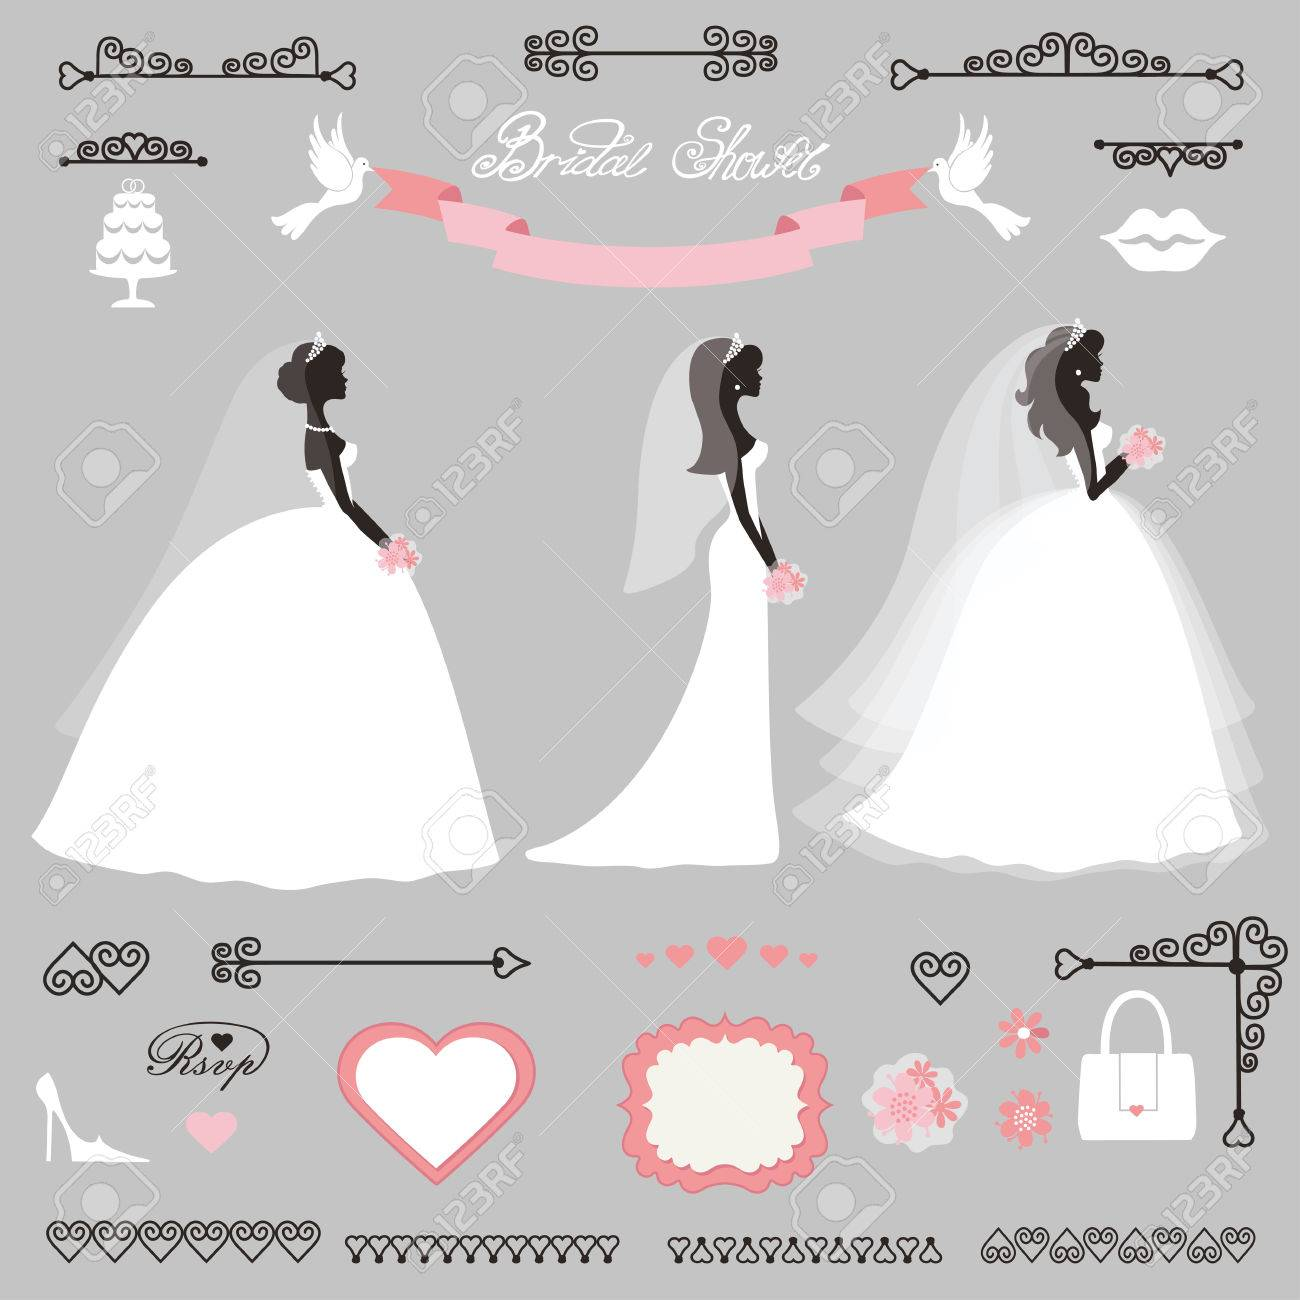 weddingbride in different dress stylebridal shower decor setcartoon girl